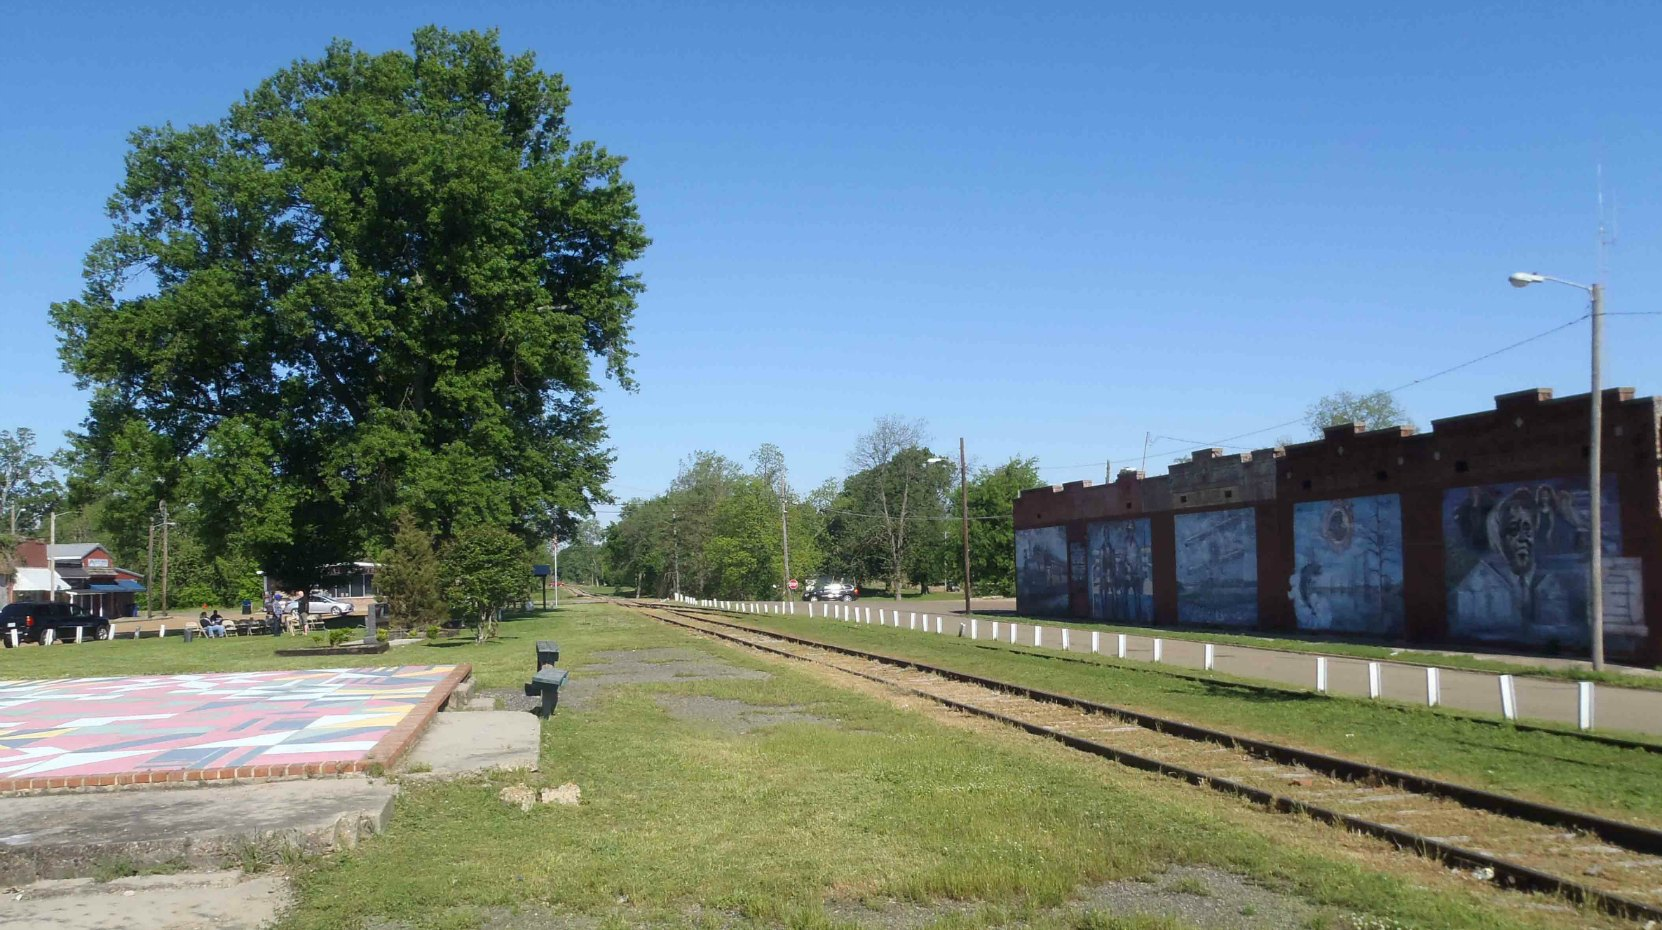 The remains of the former Tutwiler train station where W.C. Handy encountered the blues, Tutwiler, Mississippi